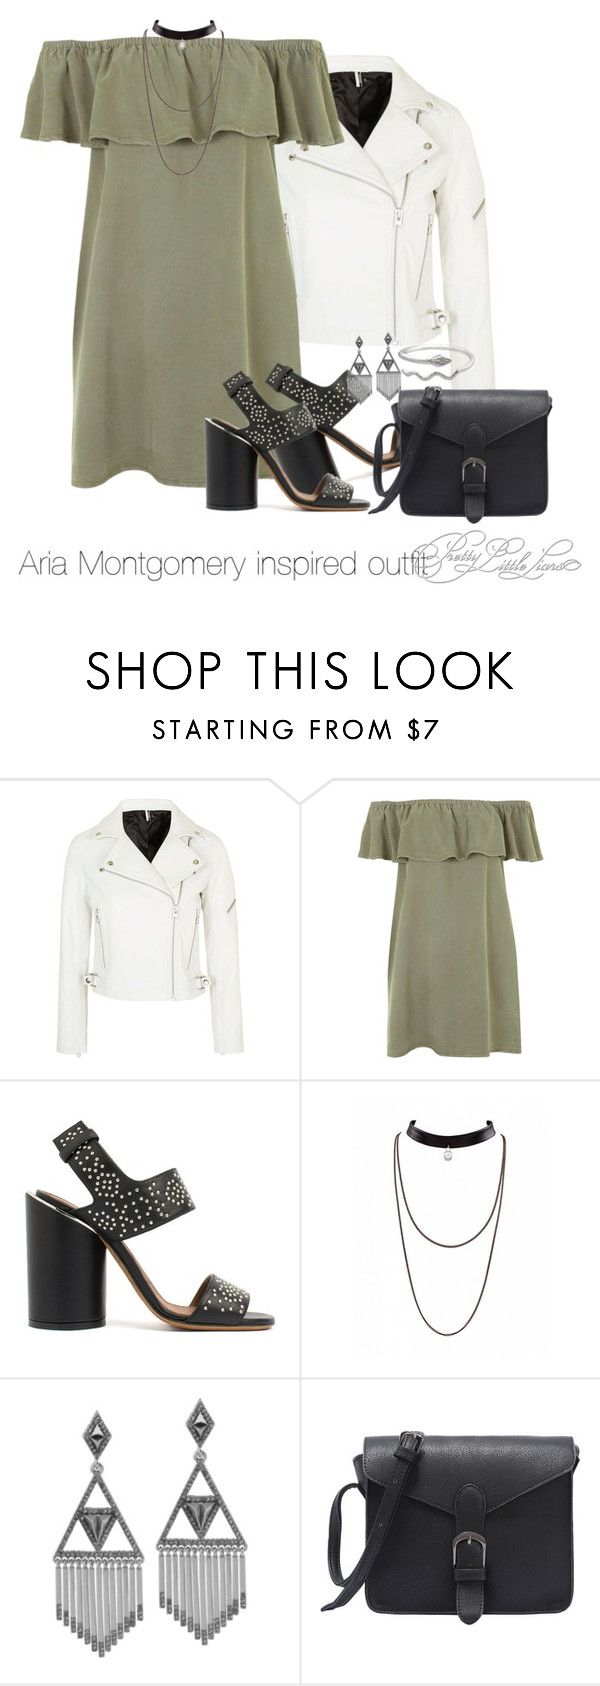 """Aria Montgomery inspired outfit/PLL"" by tvdsarahmichele ❤ liked on Polyvore featuring Topshop, Givenchy and House of Harlow 1960"